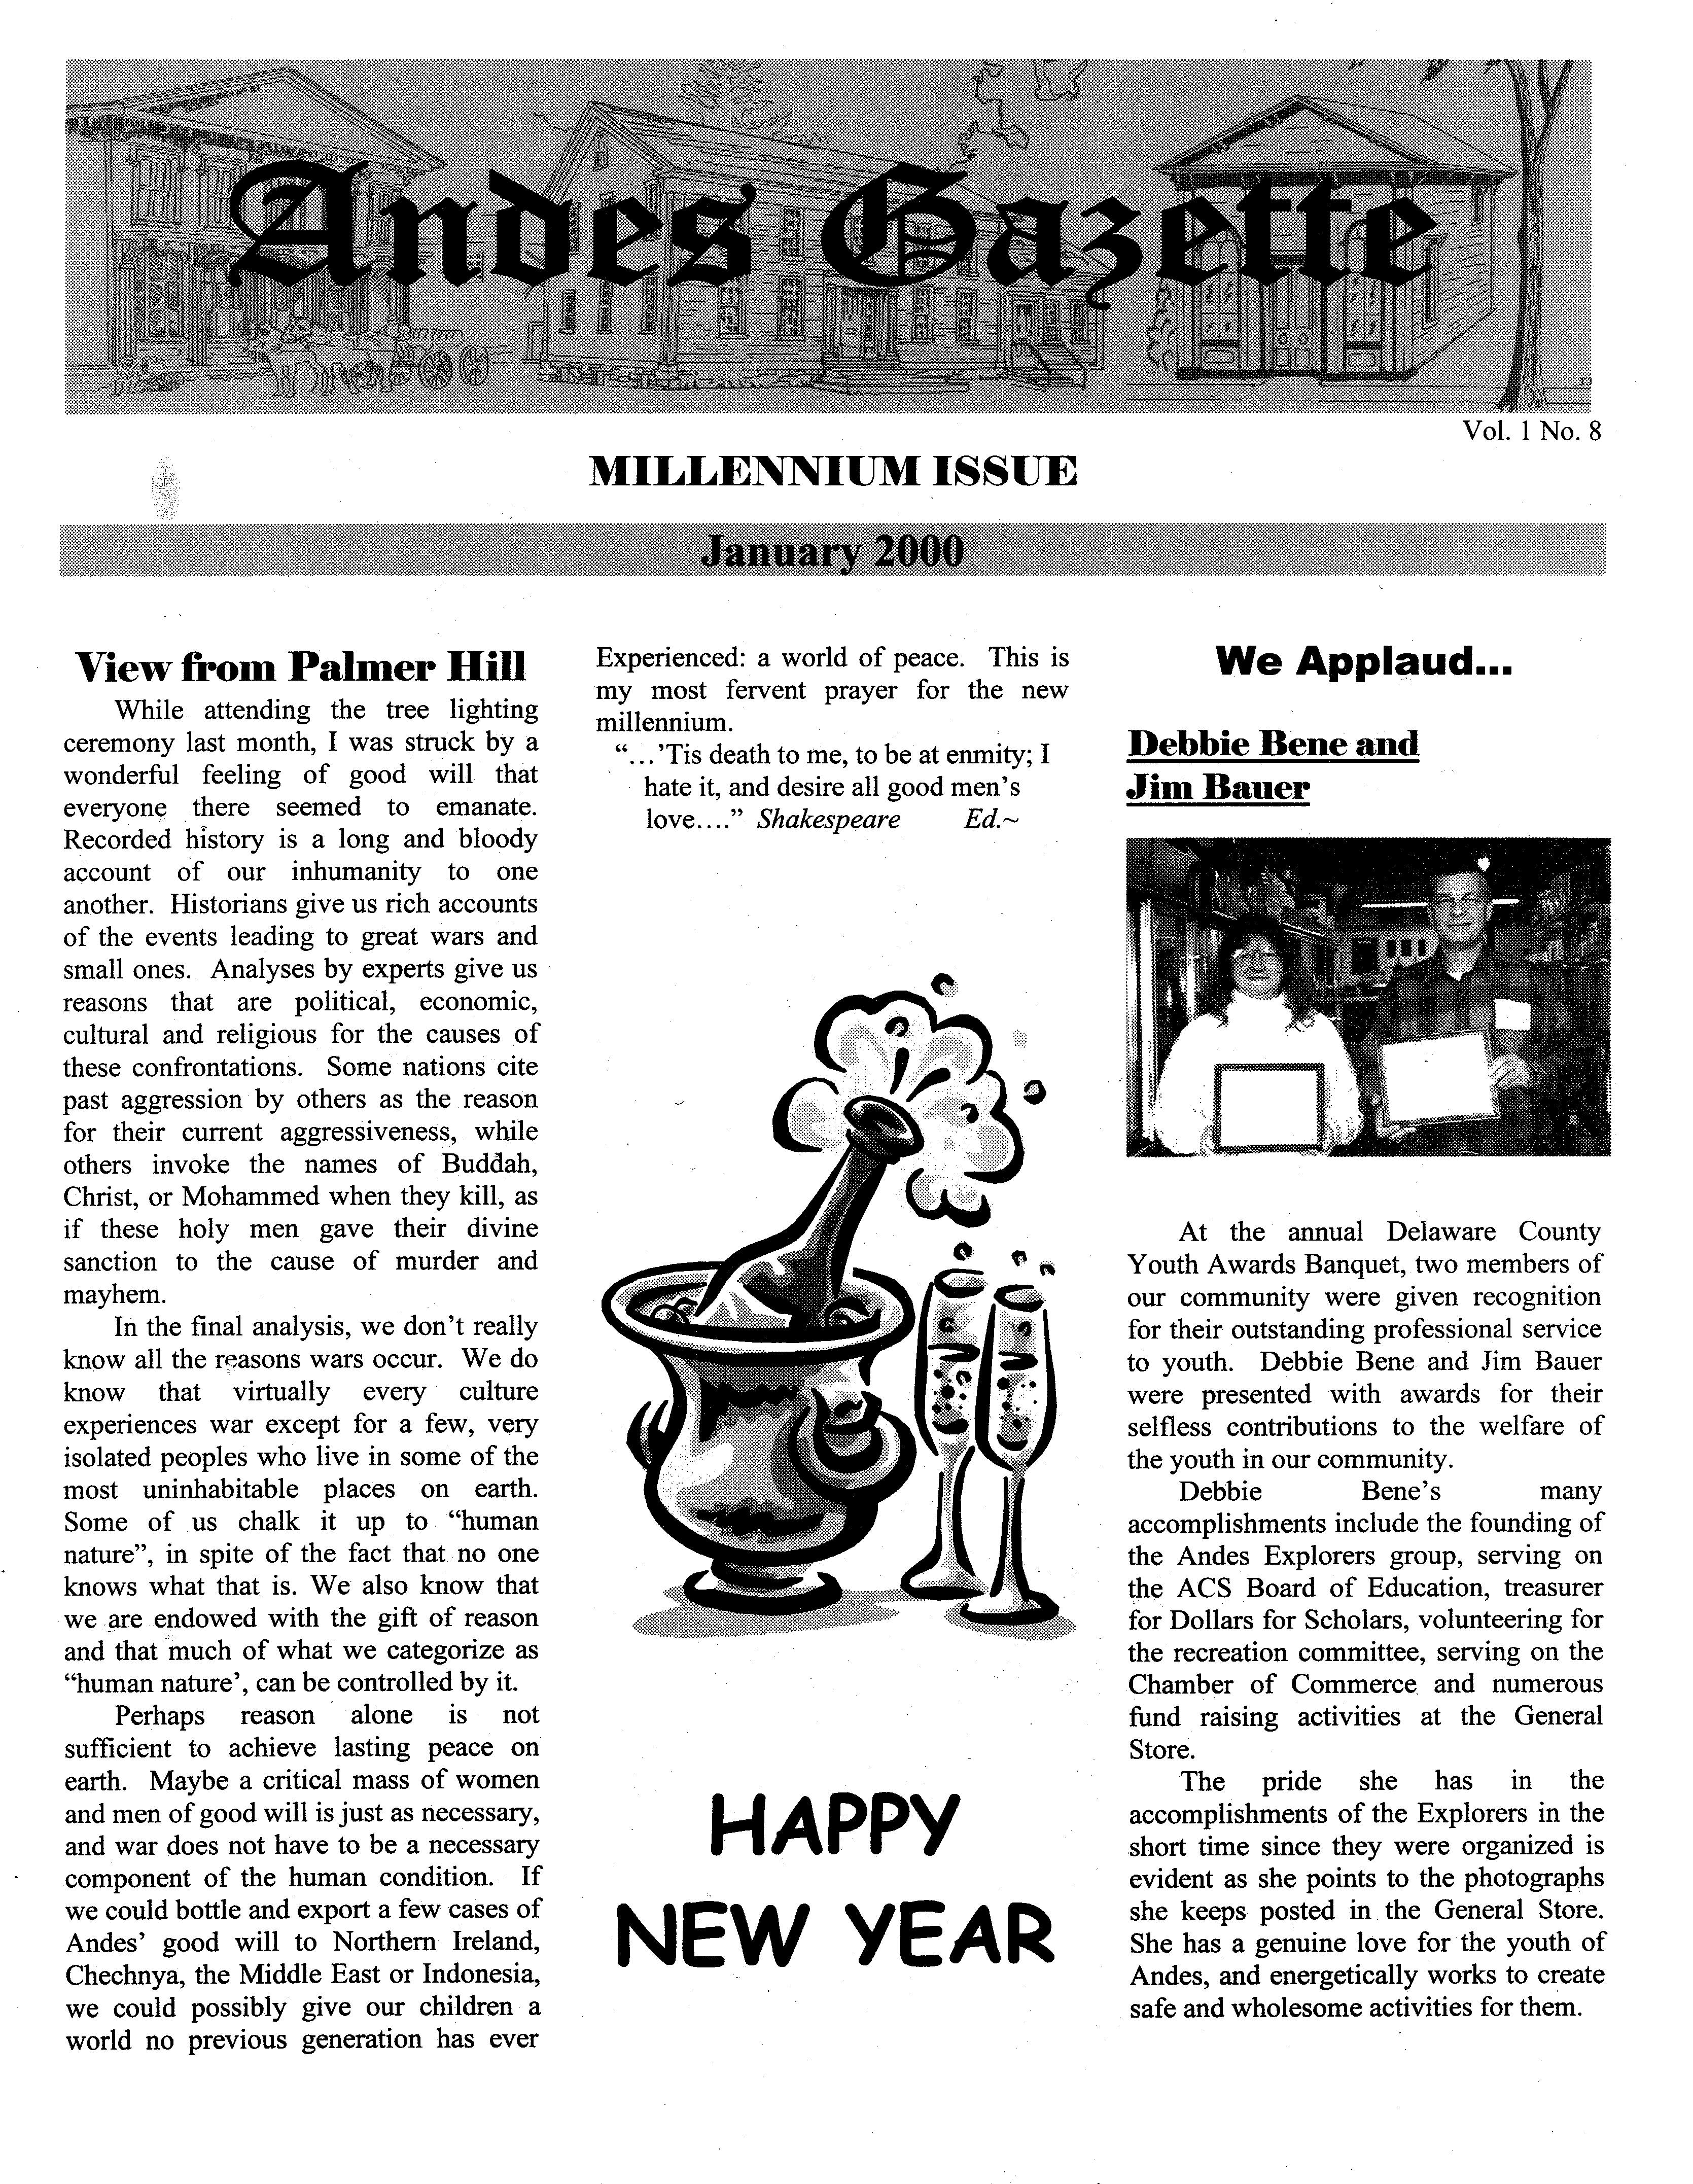 ANDES GAZETTE - January 2000 - Page 1